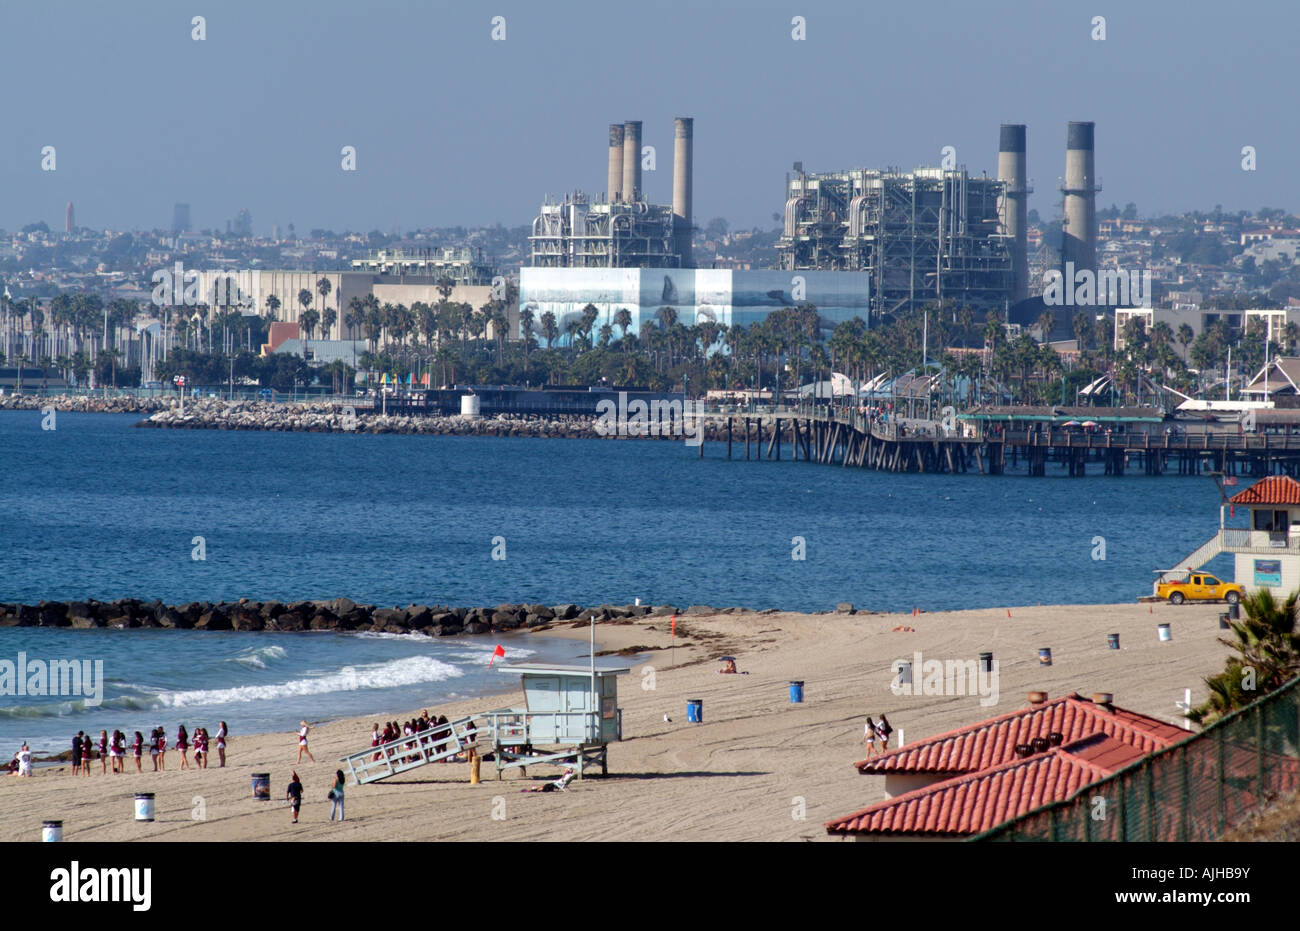 The AES Power Plant on Redondo Beach Waterfront California Los Angeles County USA - Stock Image